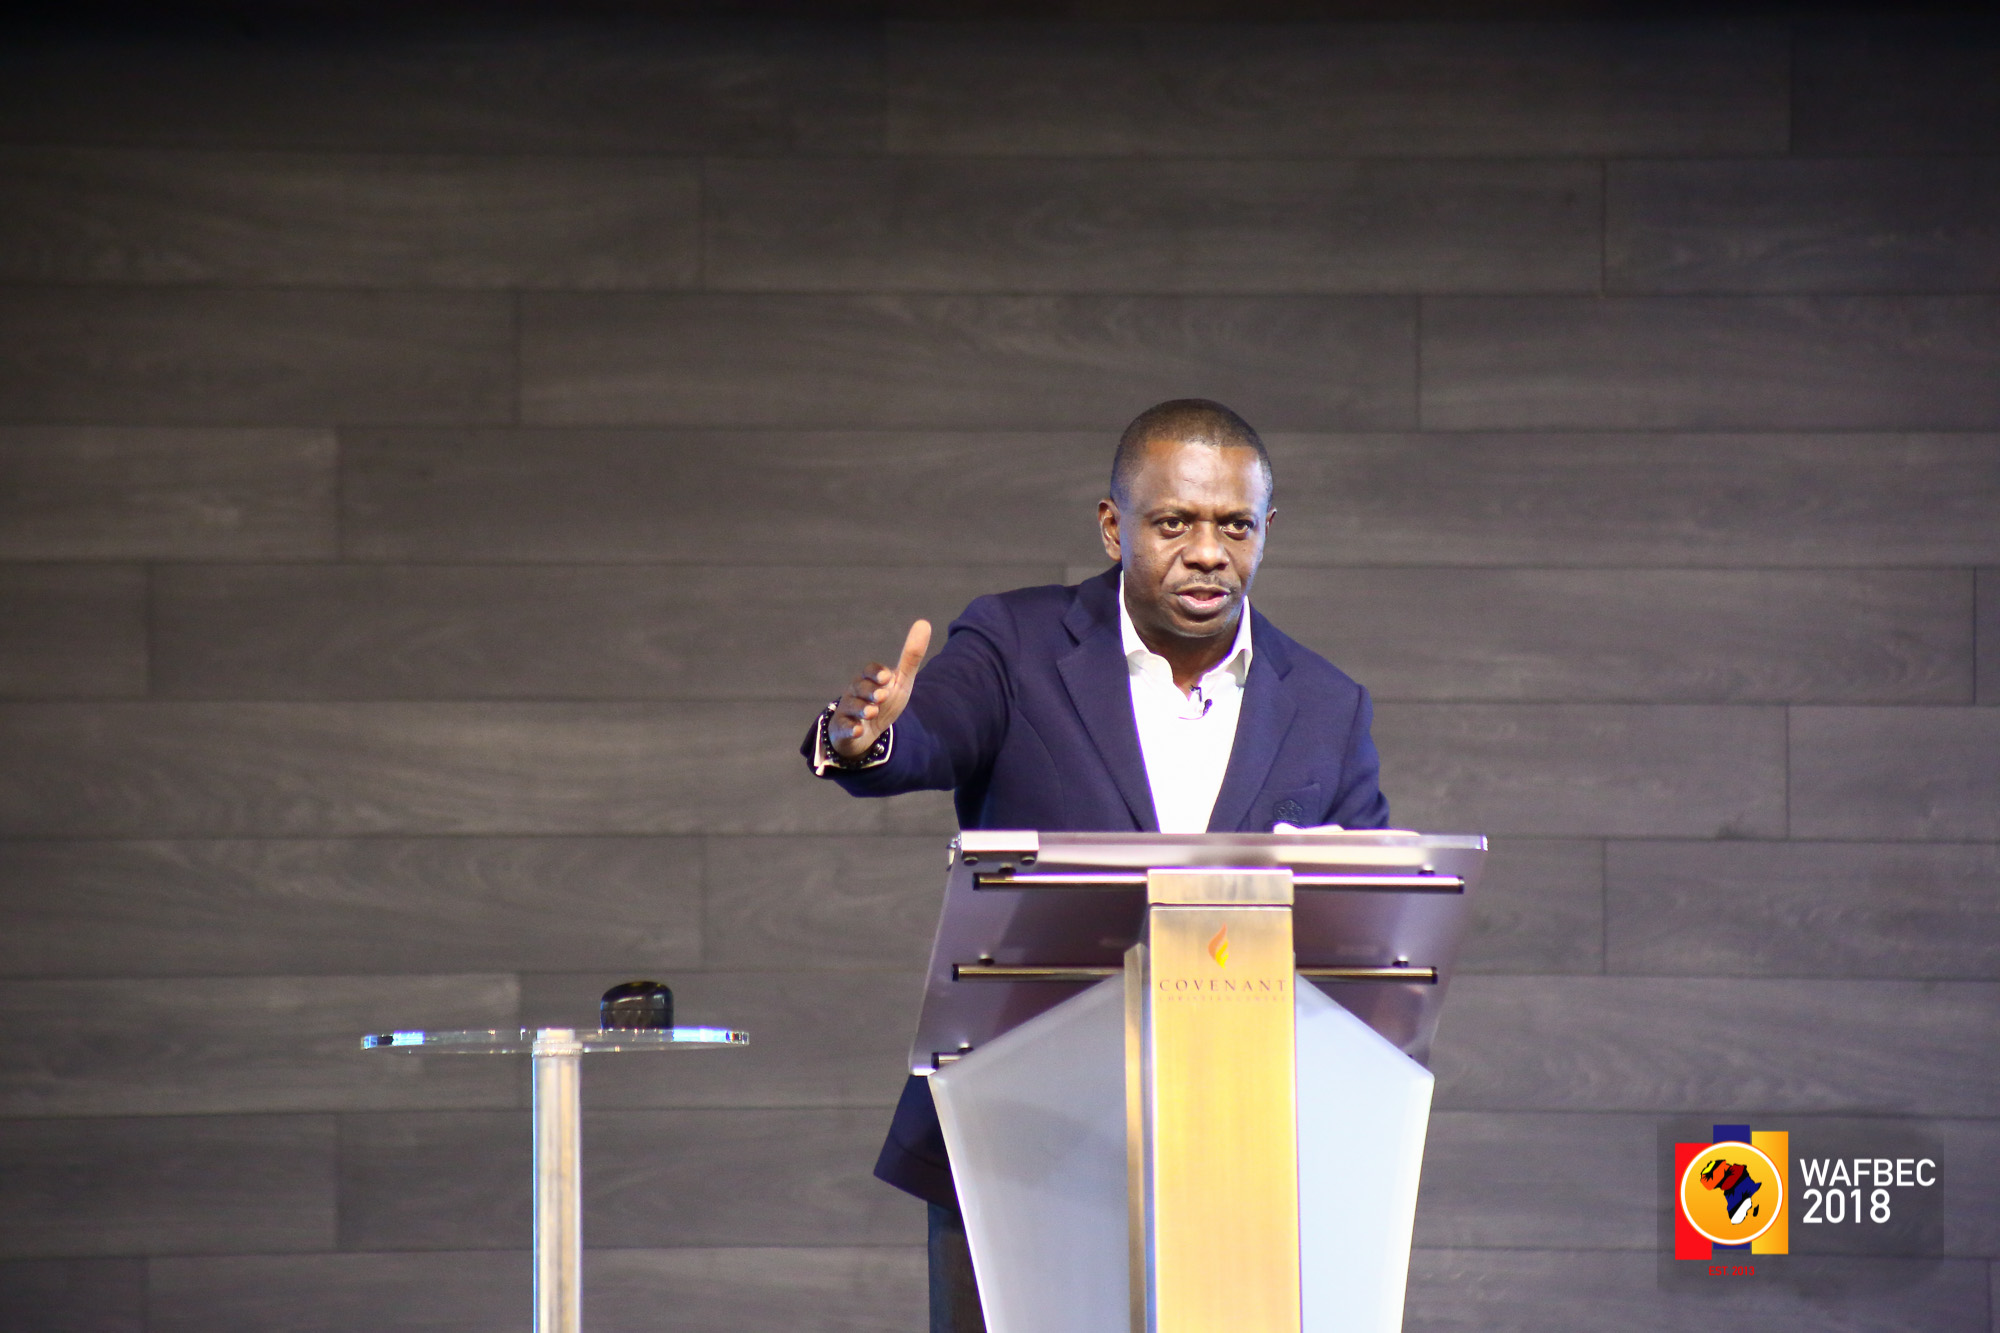 WAFBEC 2018 DAY 2 (AFTERNOON SESSION 1) with PASTOR POJU OYEMADE